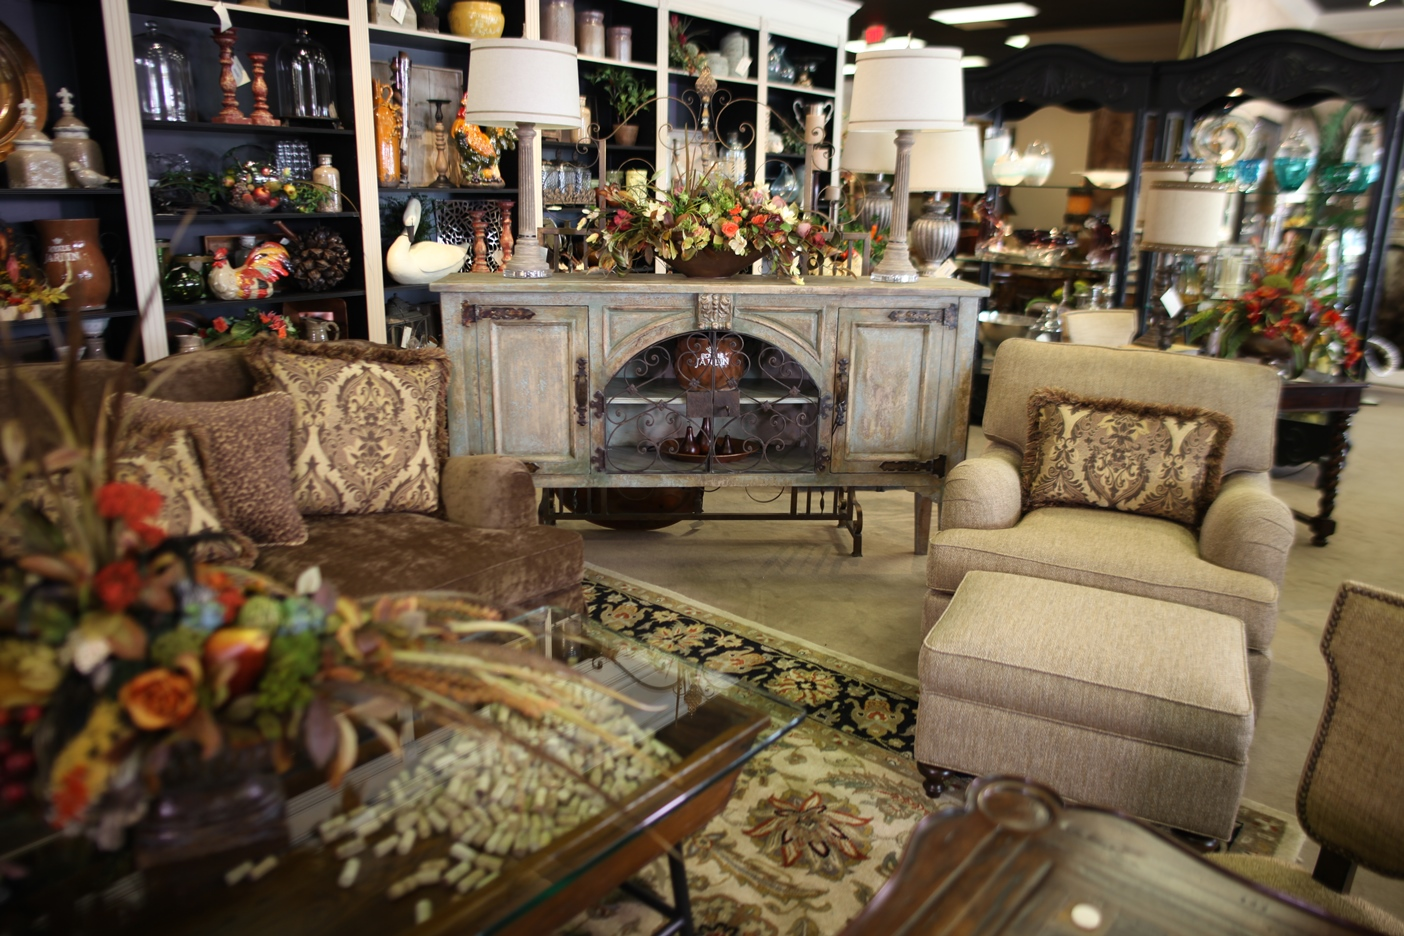 Home Decorating Gallery M Fatheree Interiors In The Woodlands Tx